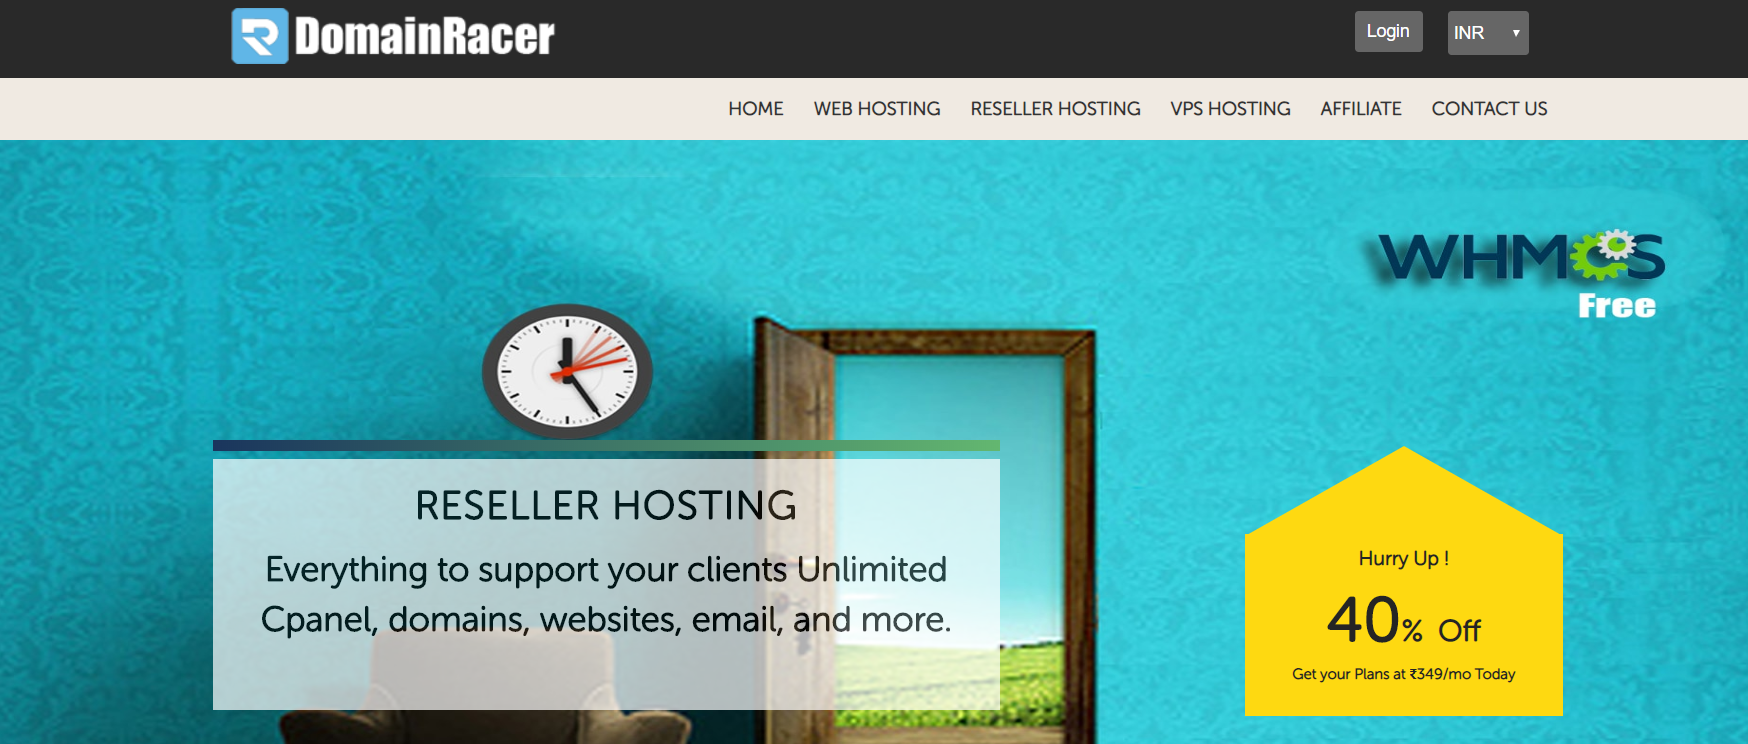 DomainRacer- Top Best Reseller Hosting